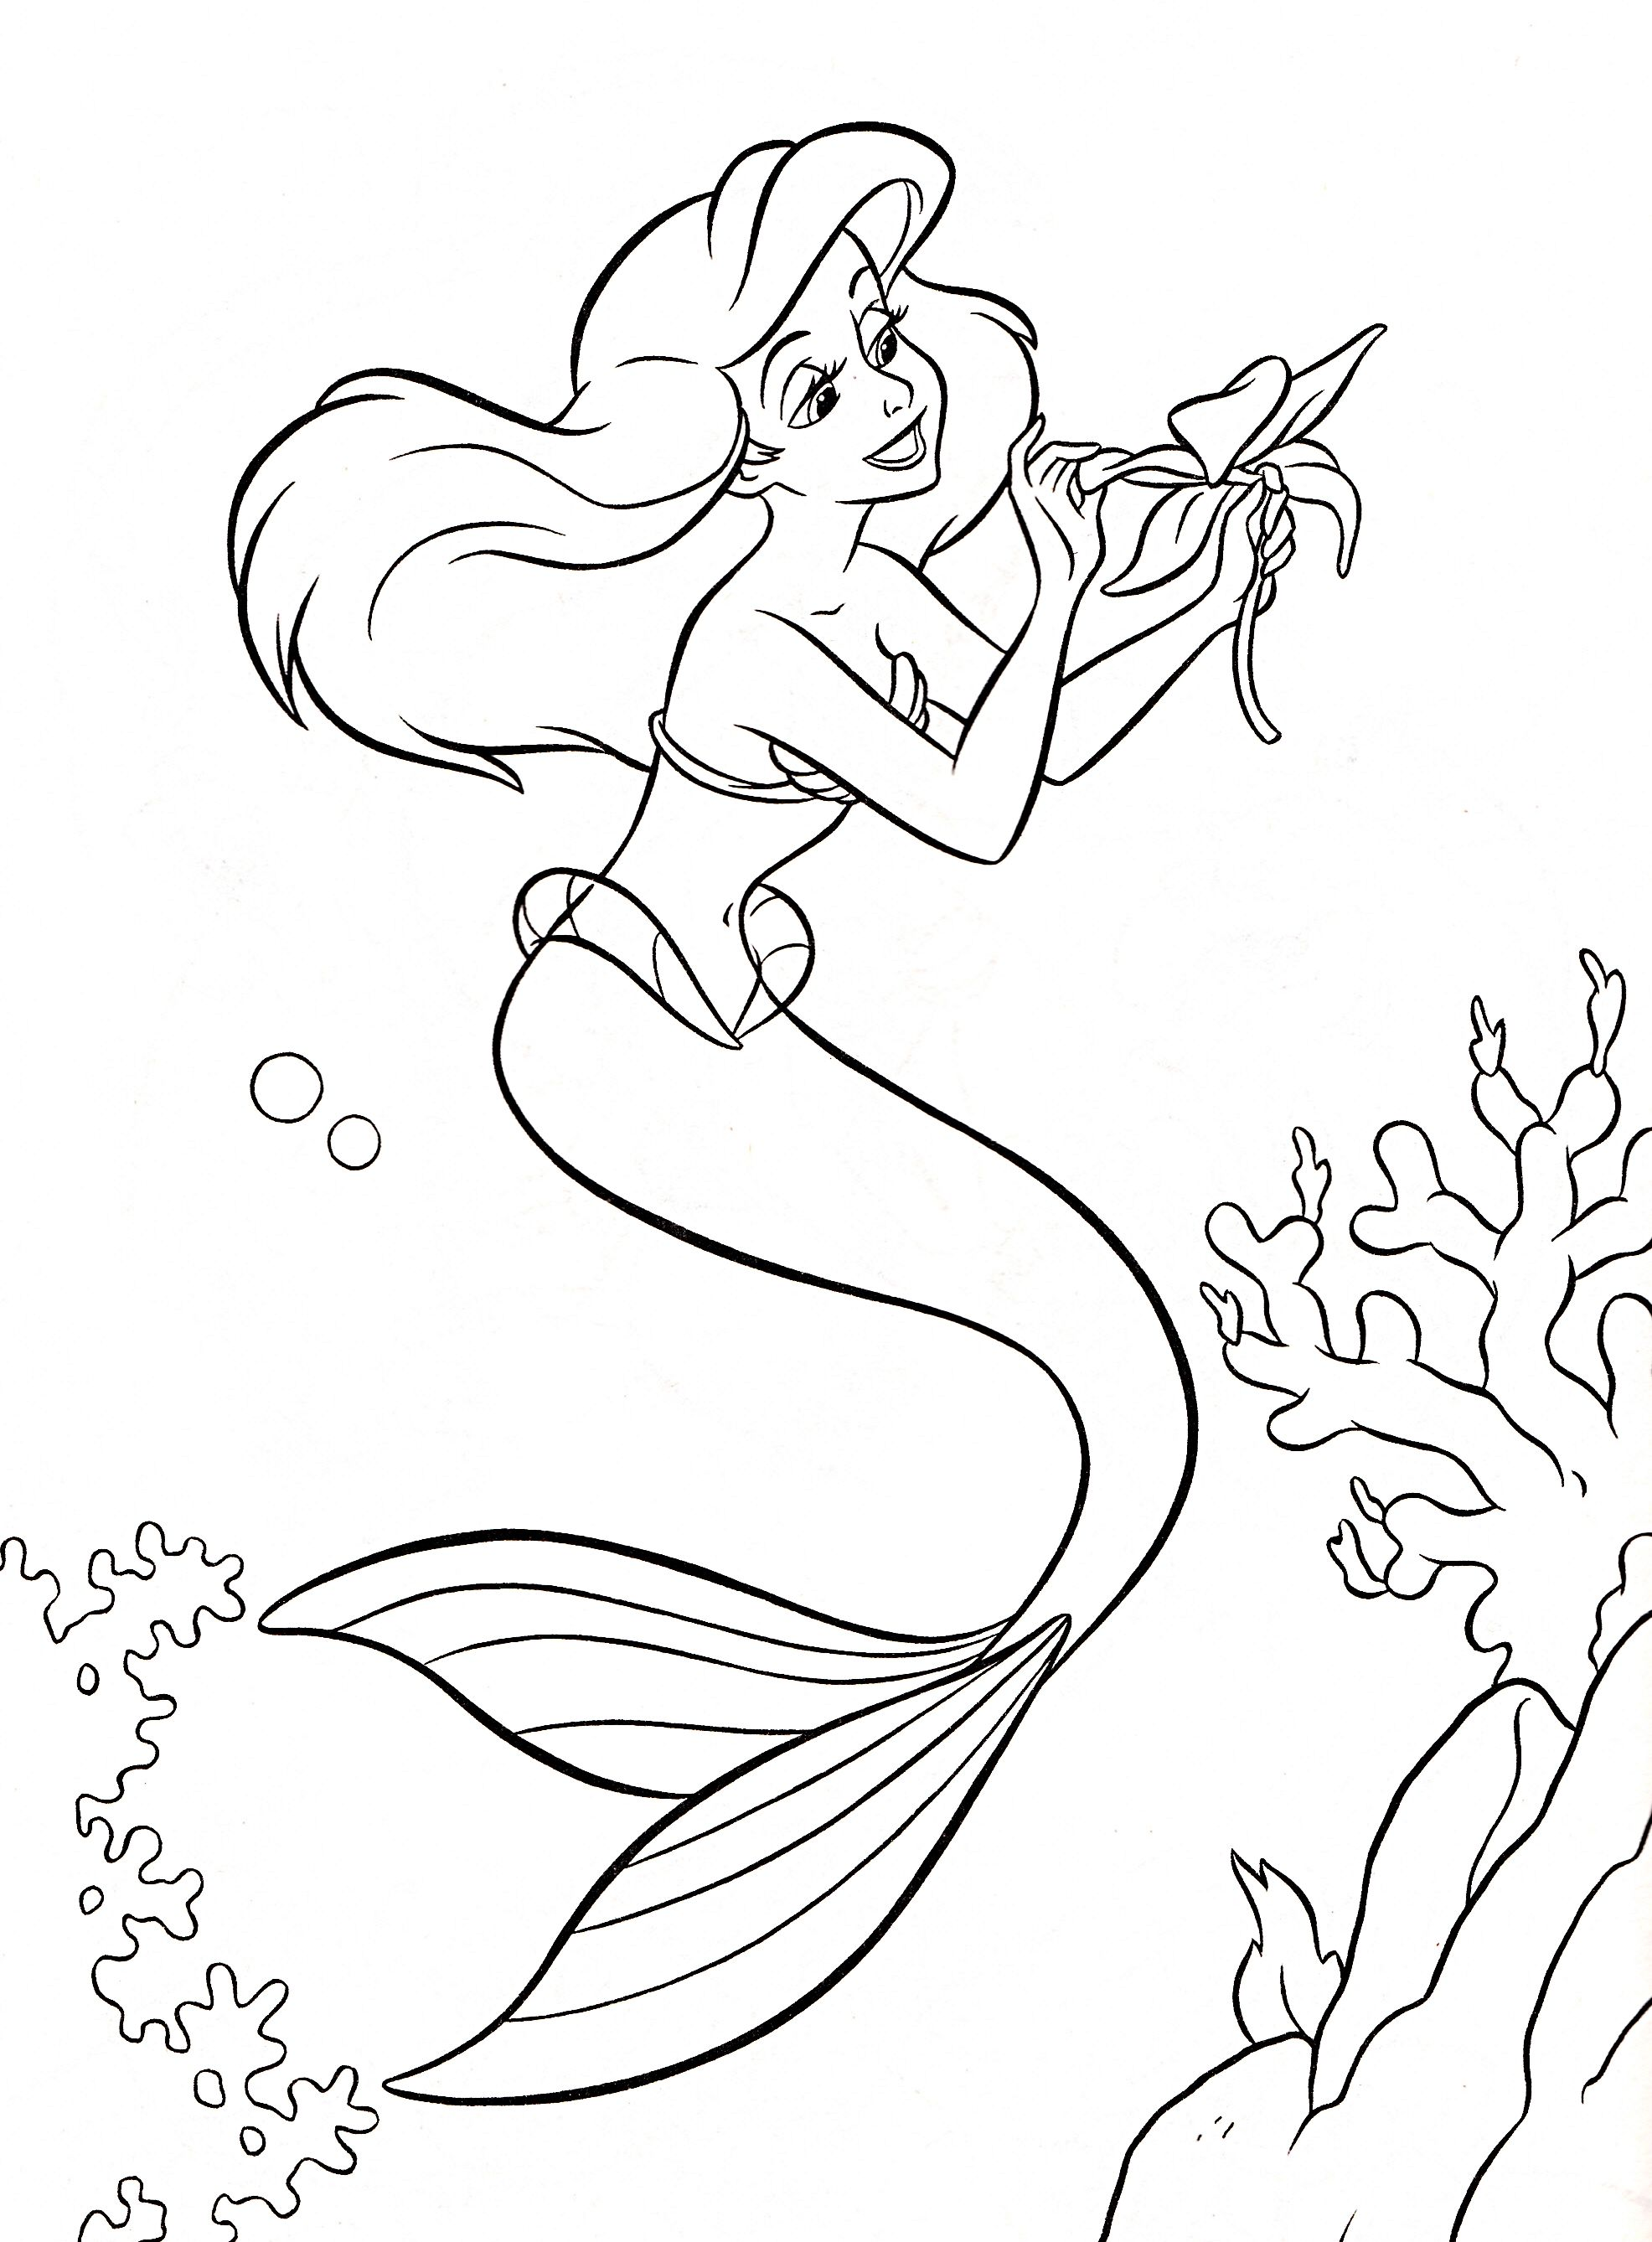 Pin by Lori R. Nelson on printables Princess coloring